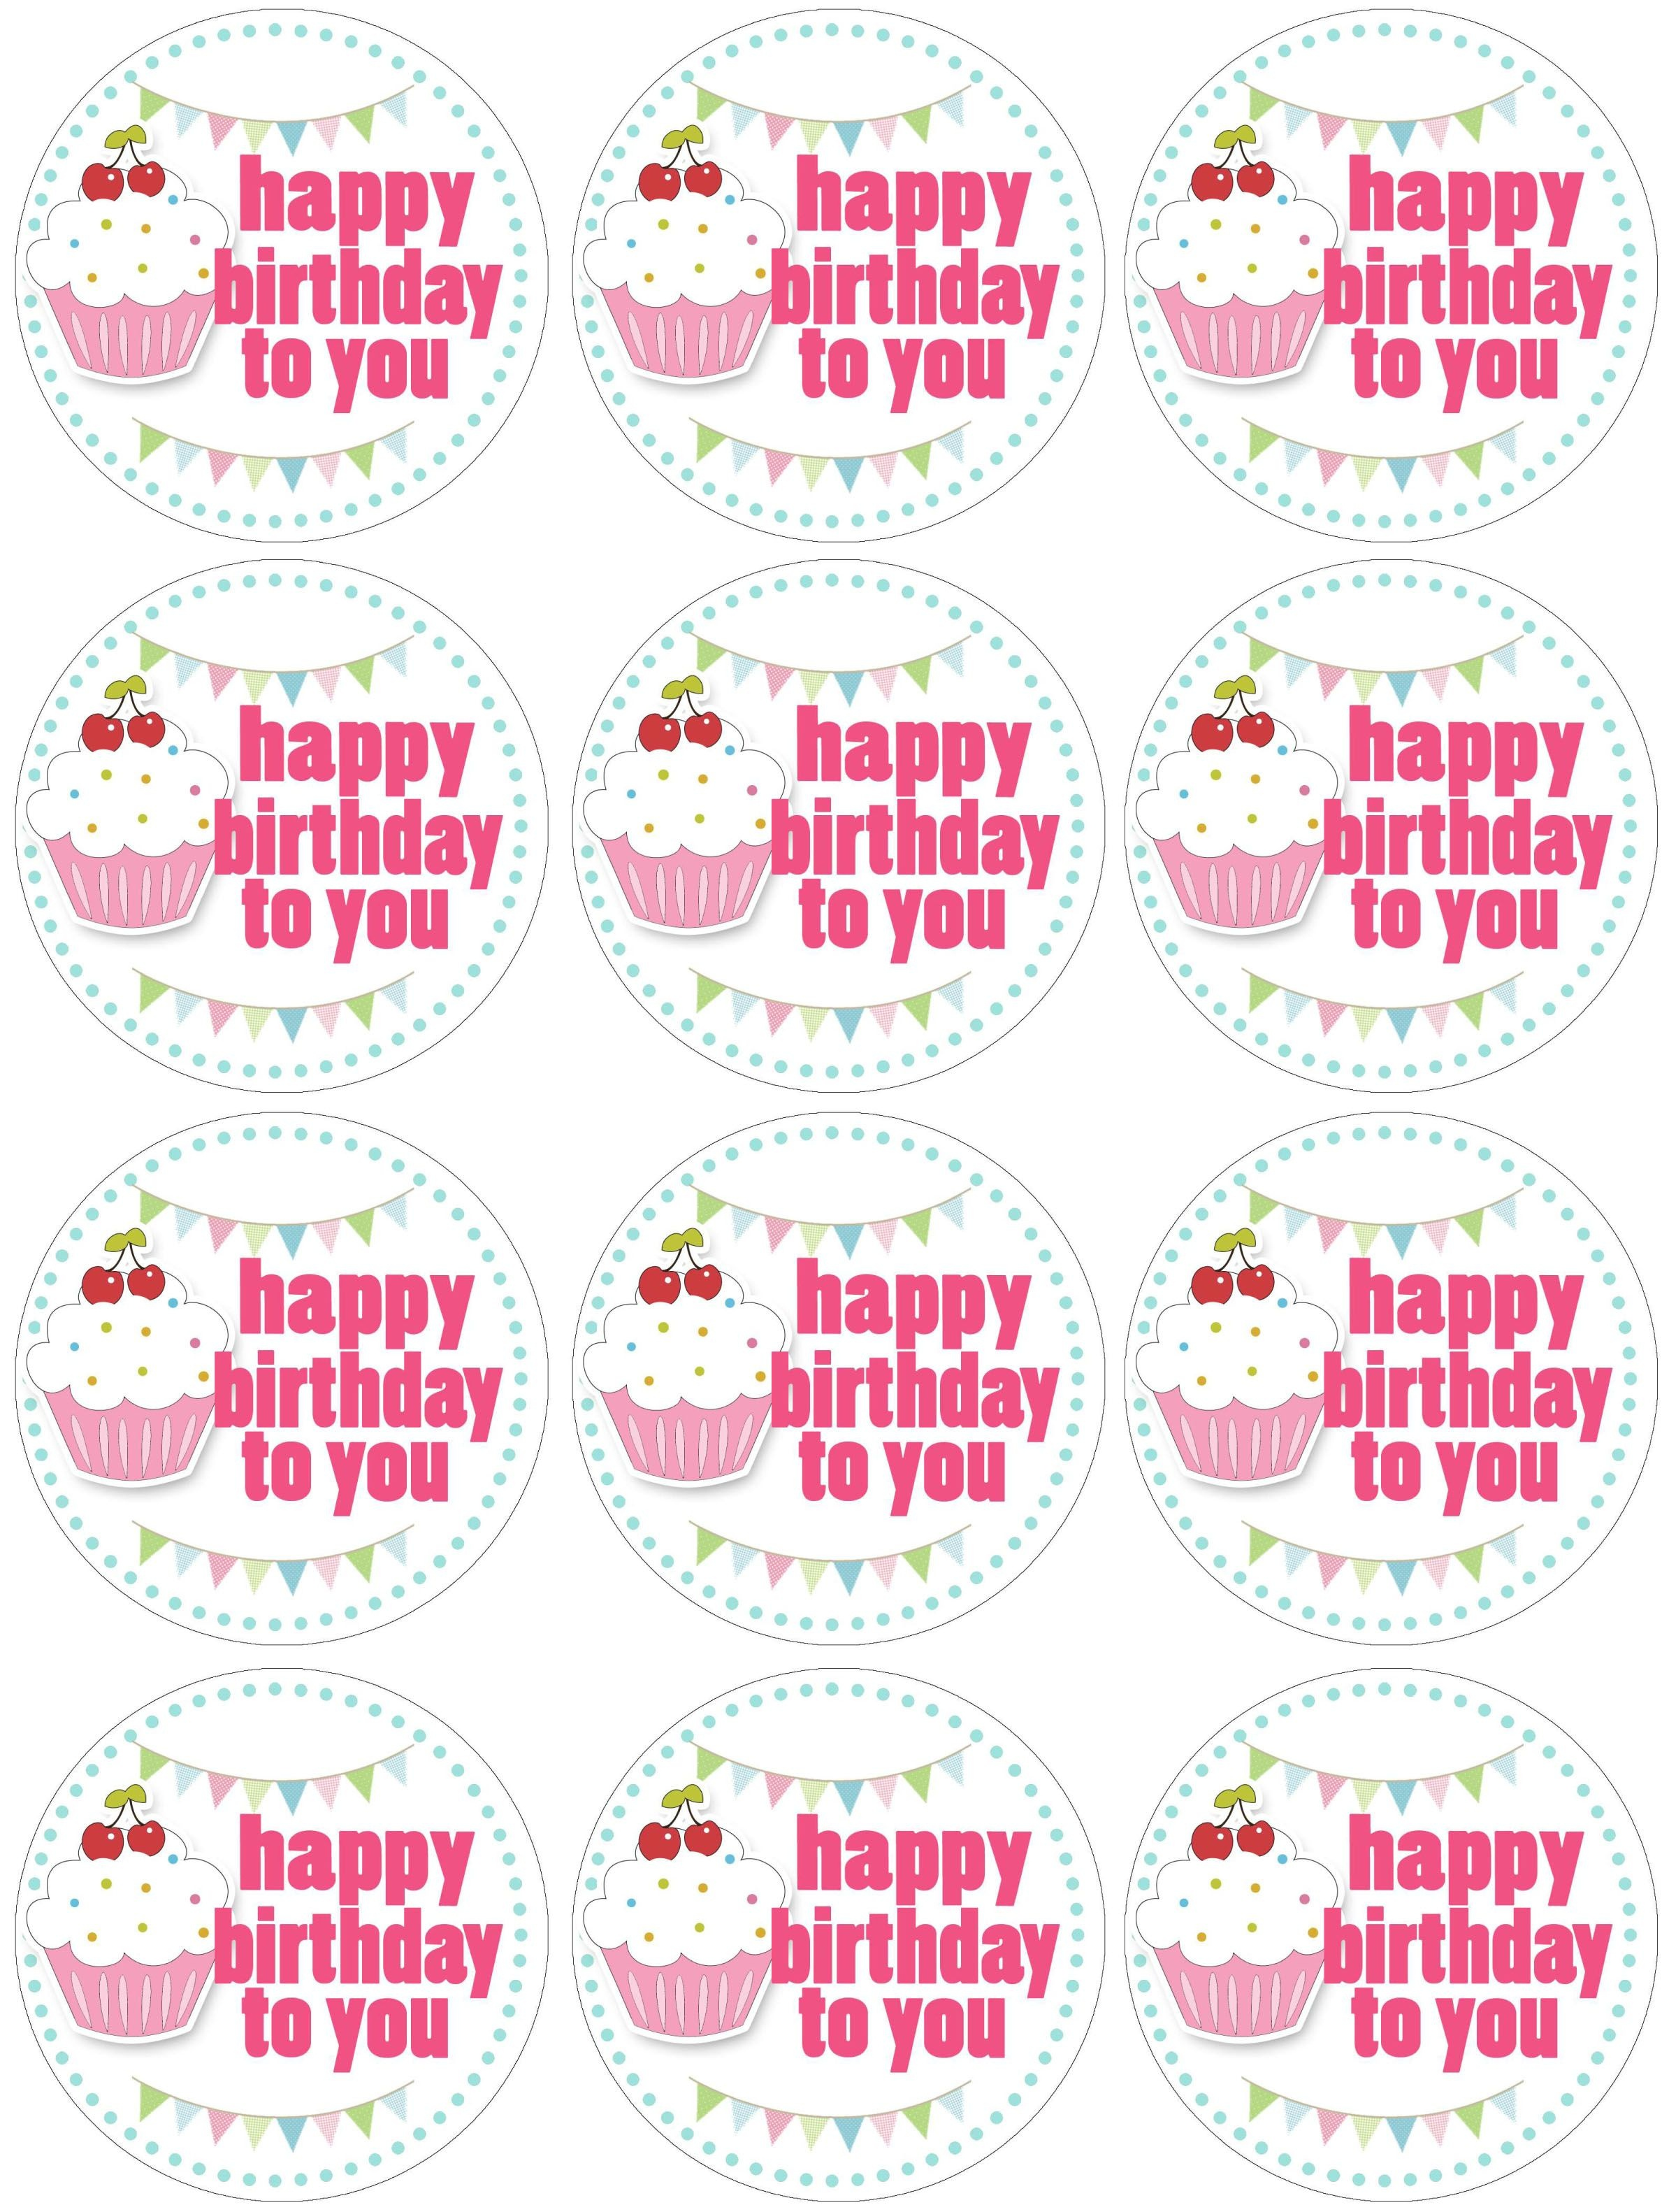 Cupcake Birthday Party With Free Printables | Free Printables - Cupcake Topper Templates Free Printable